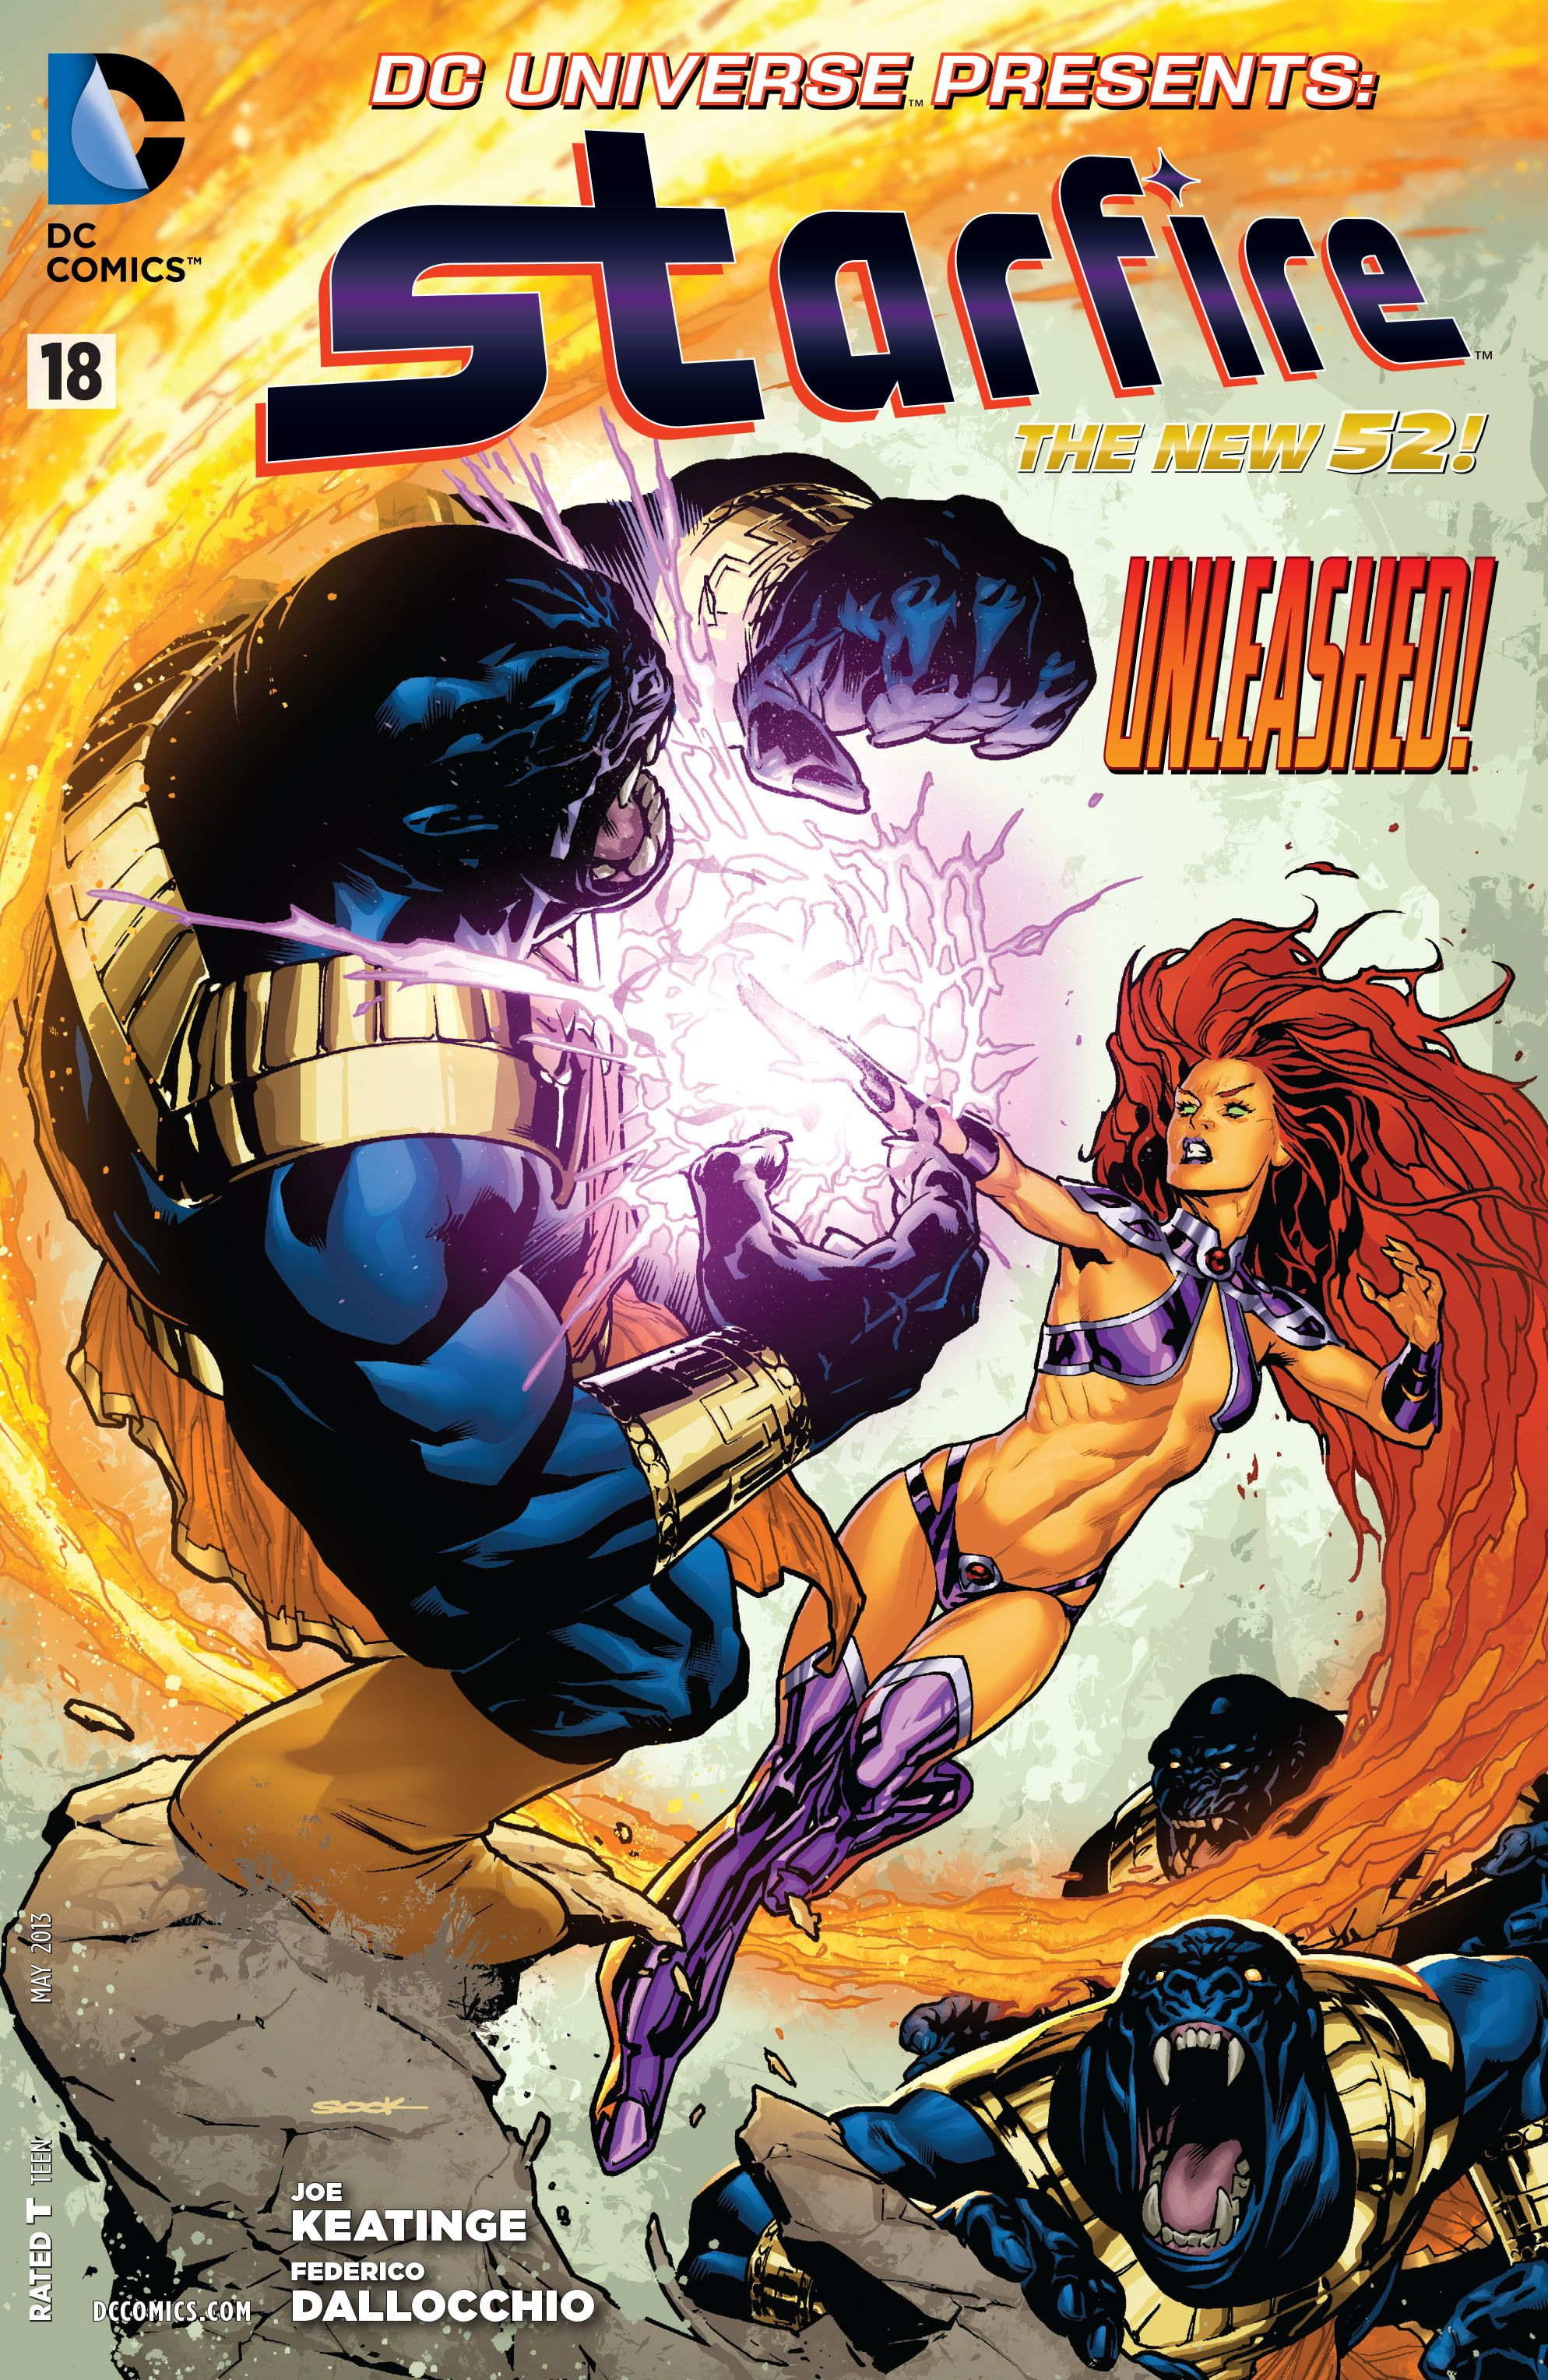 teen-titans-movie-project-navtica-only-movies-ebony